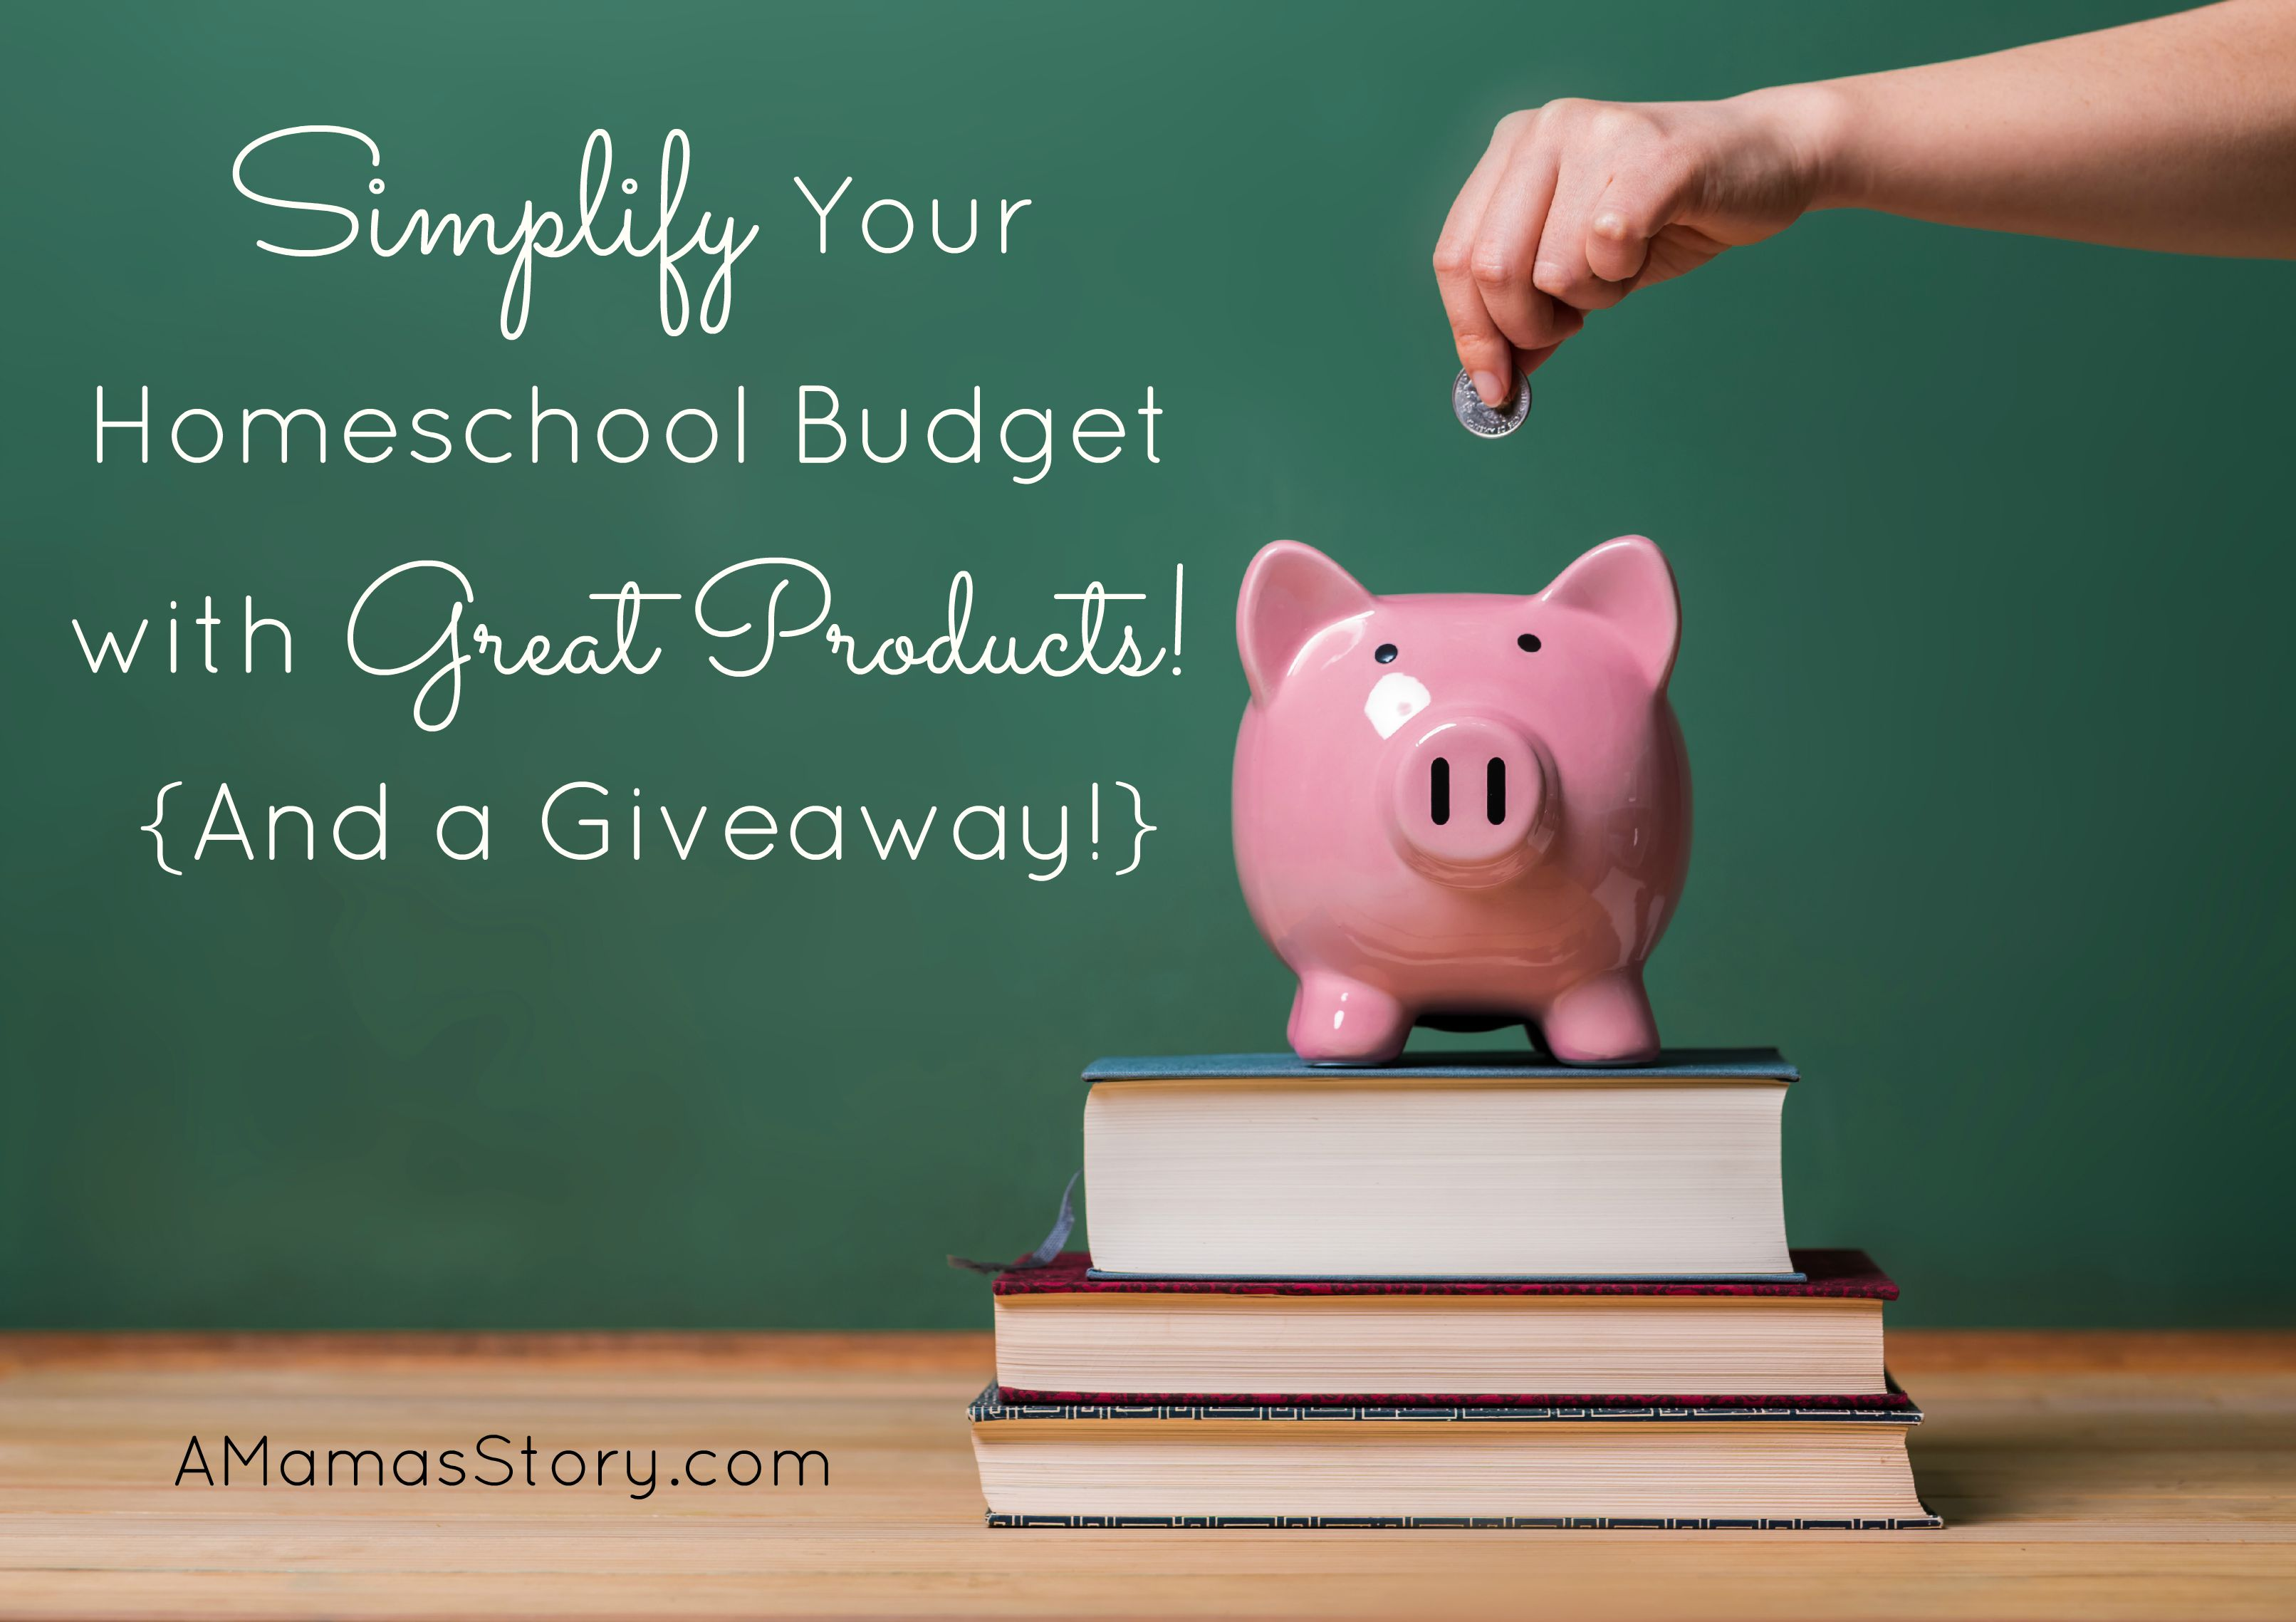 Simplify Your Homeschool Budget With Great Products {And a Giveaway}